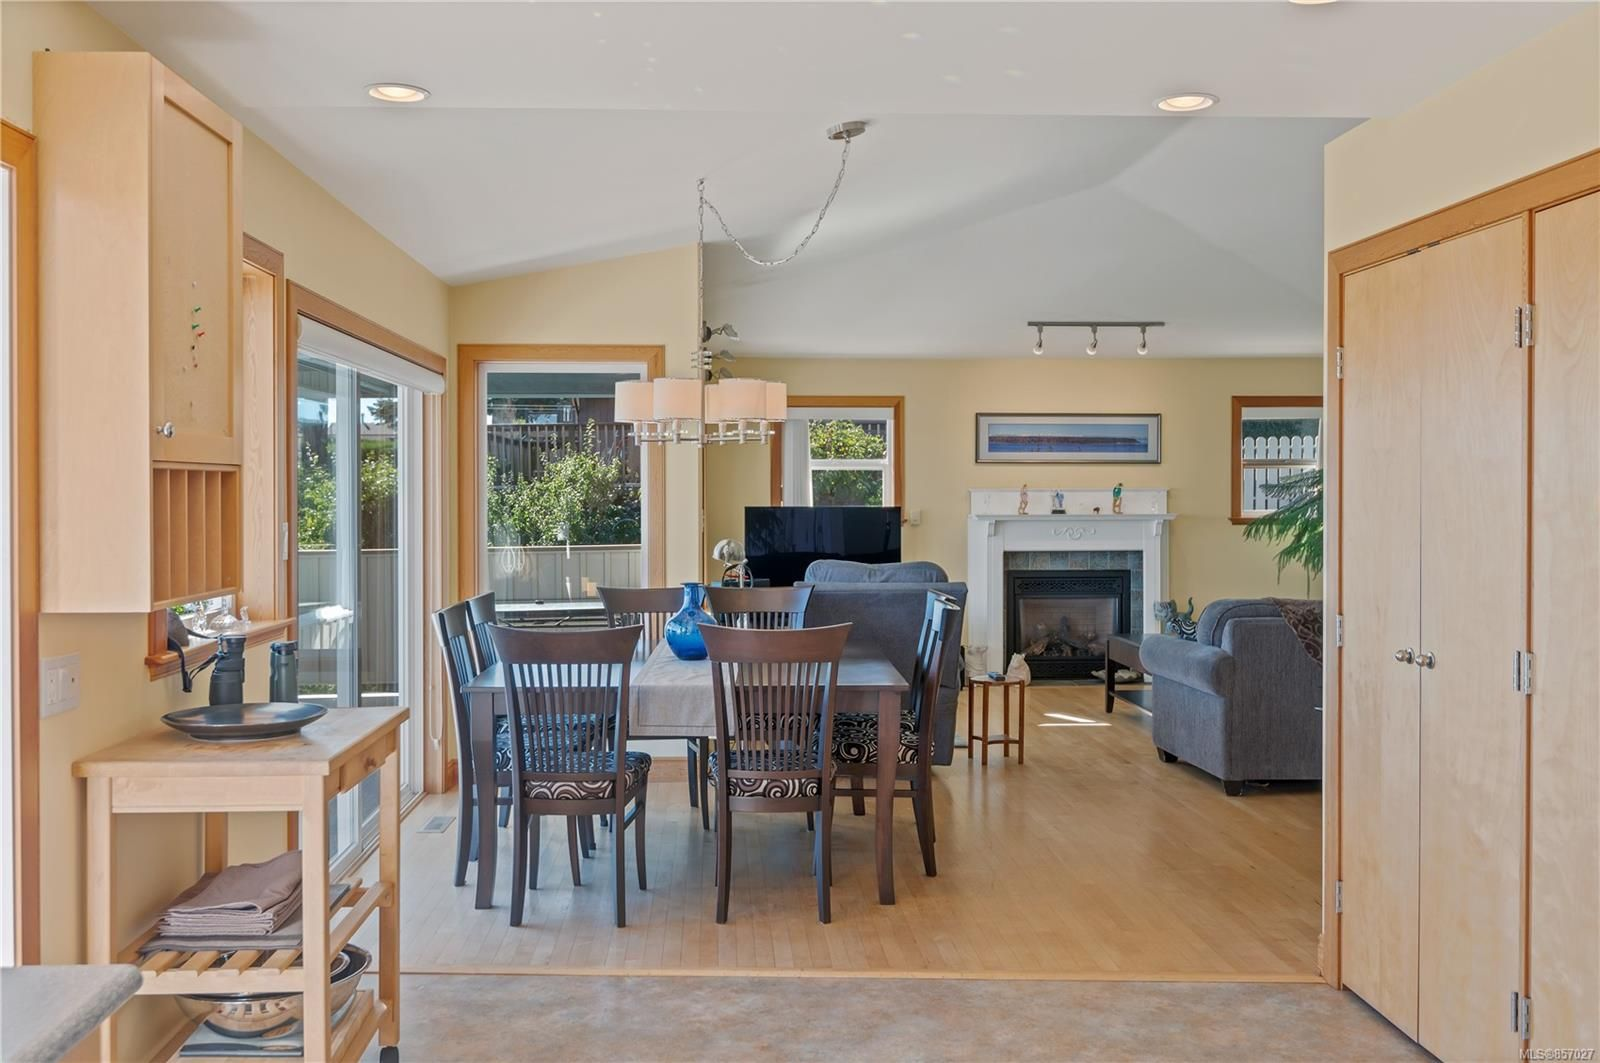 Photo 14: Photos: 253 S Alder St in : CR Campbell River South House for sale (Campbell River)  : MLS®# 857027